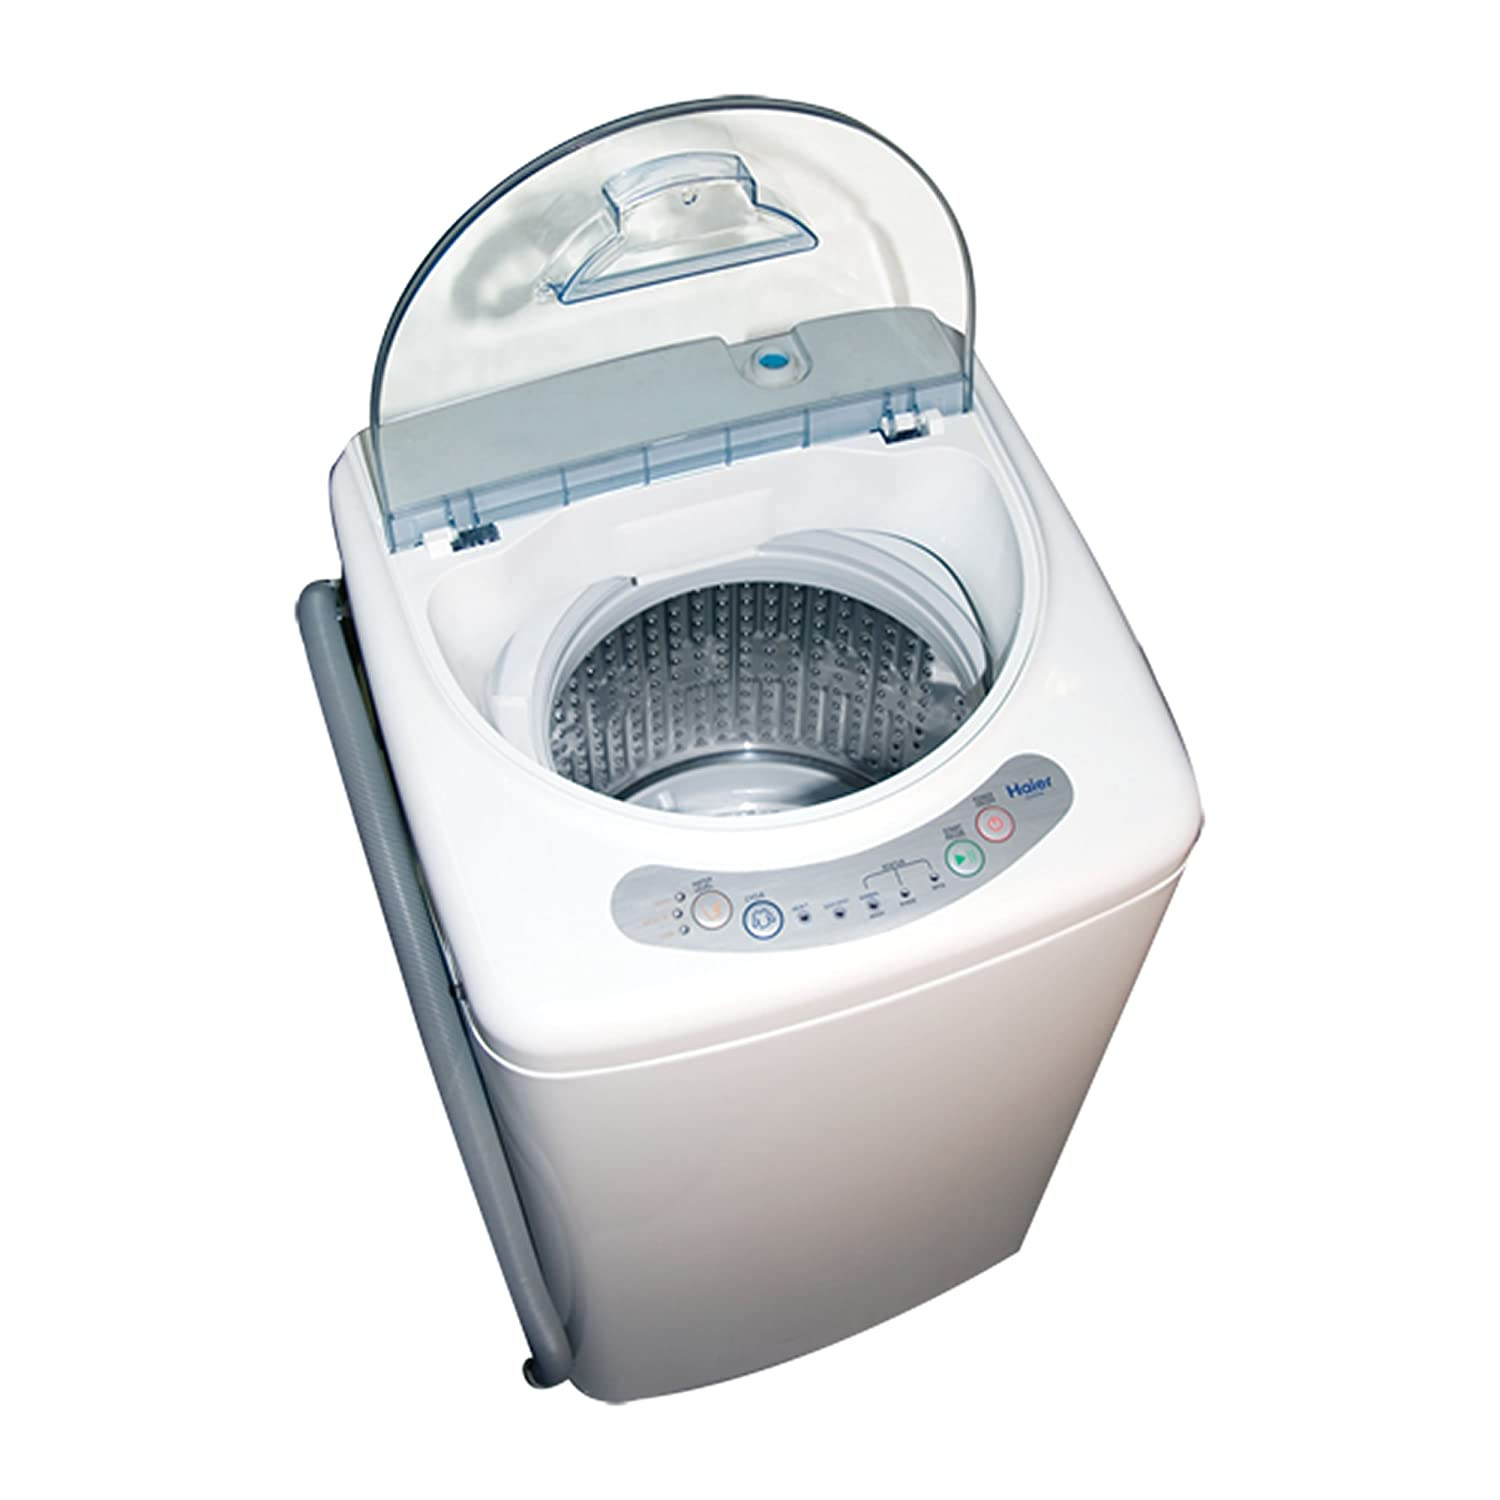 mini washing machine for your mini living space product talk